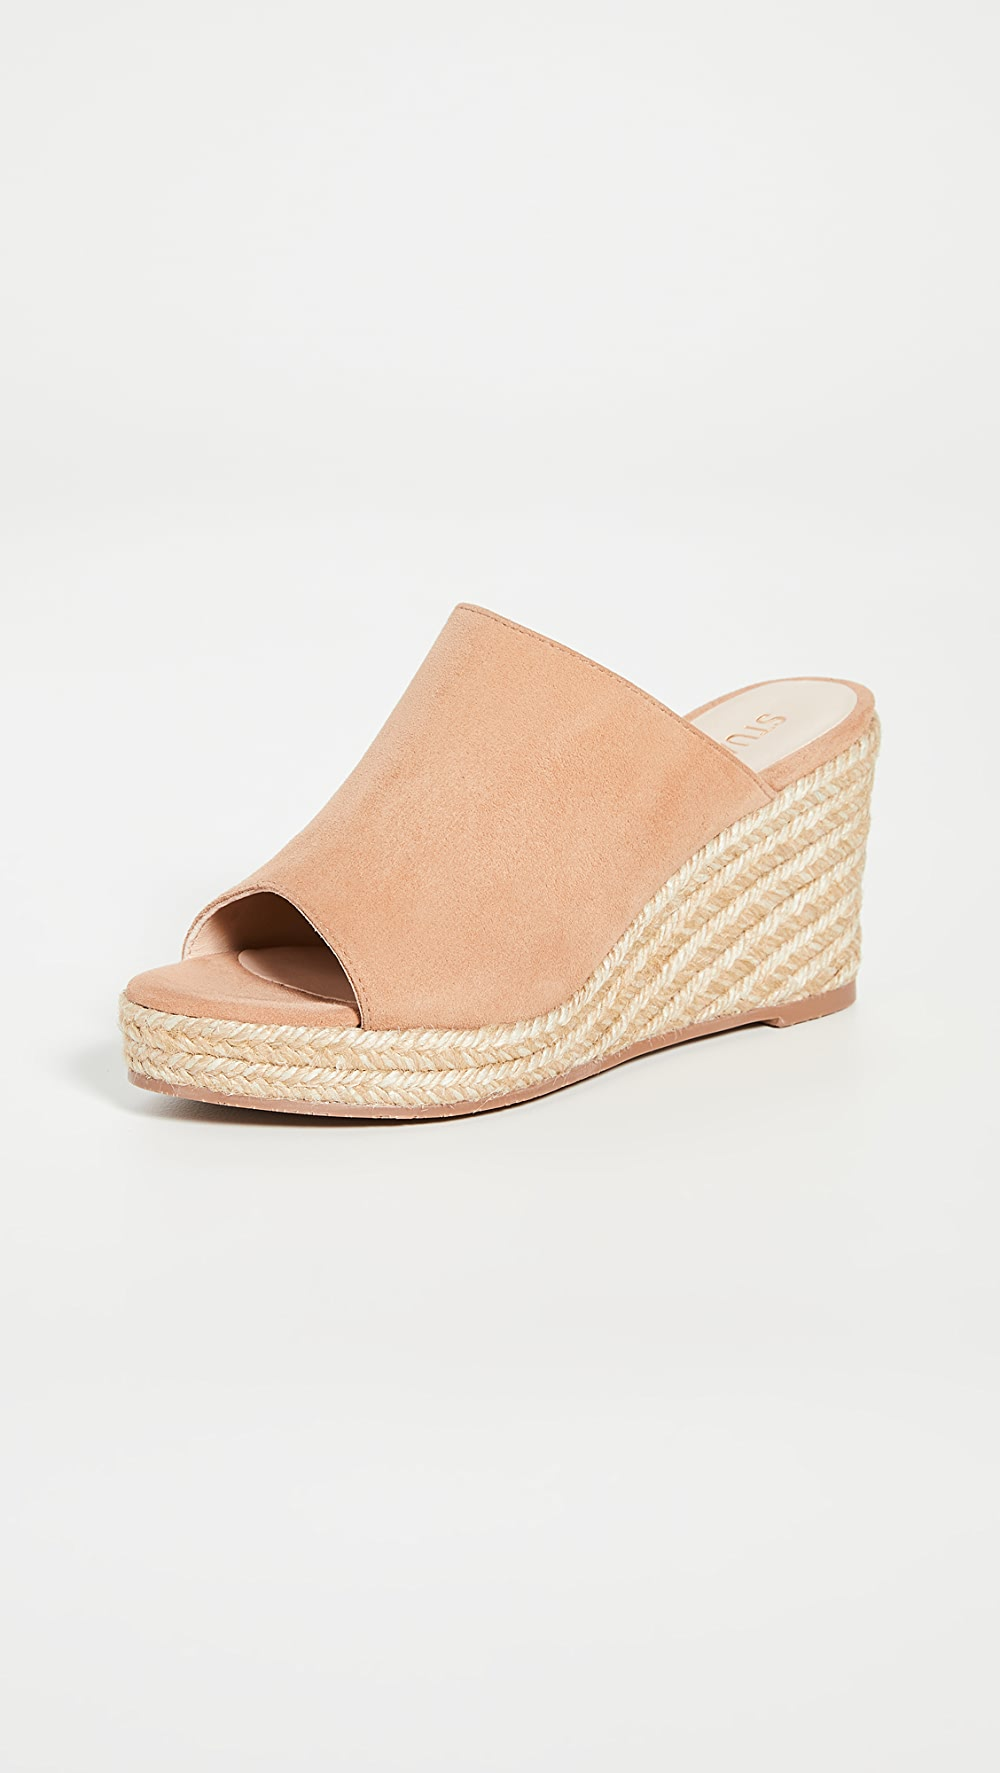 Enthusiastic Stuart Weitzman - Marabella Espadrilles New Varieties Are Introduced One After Another